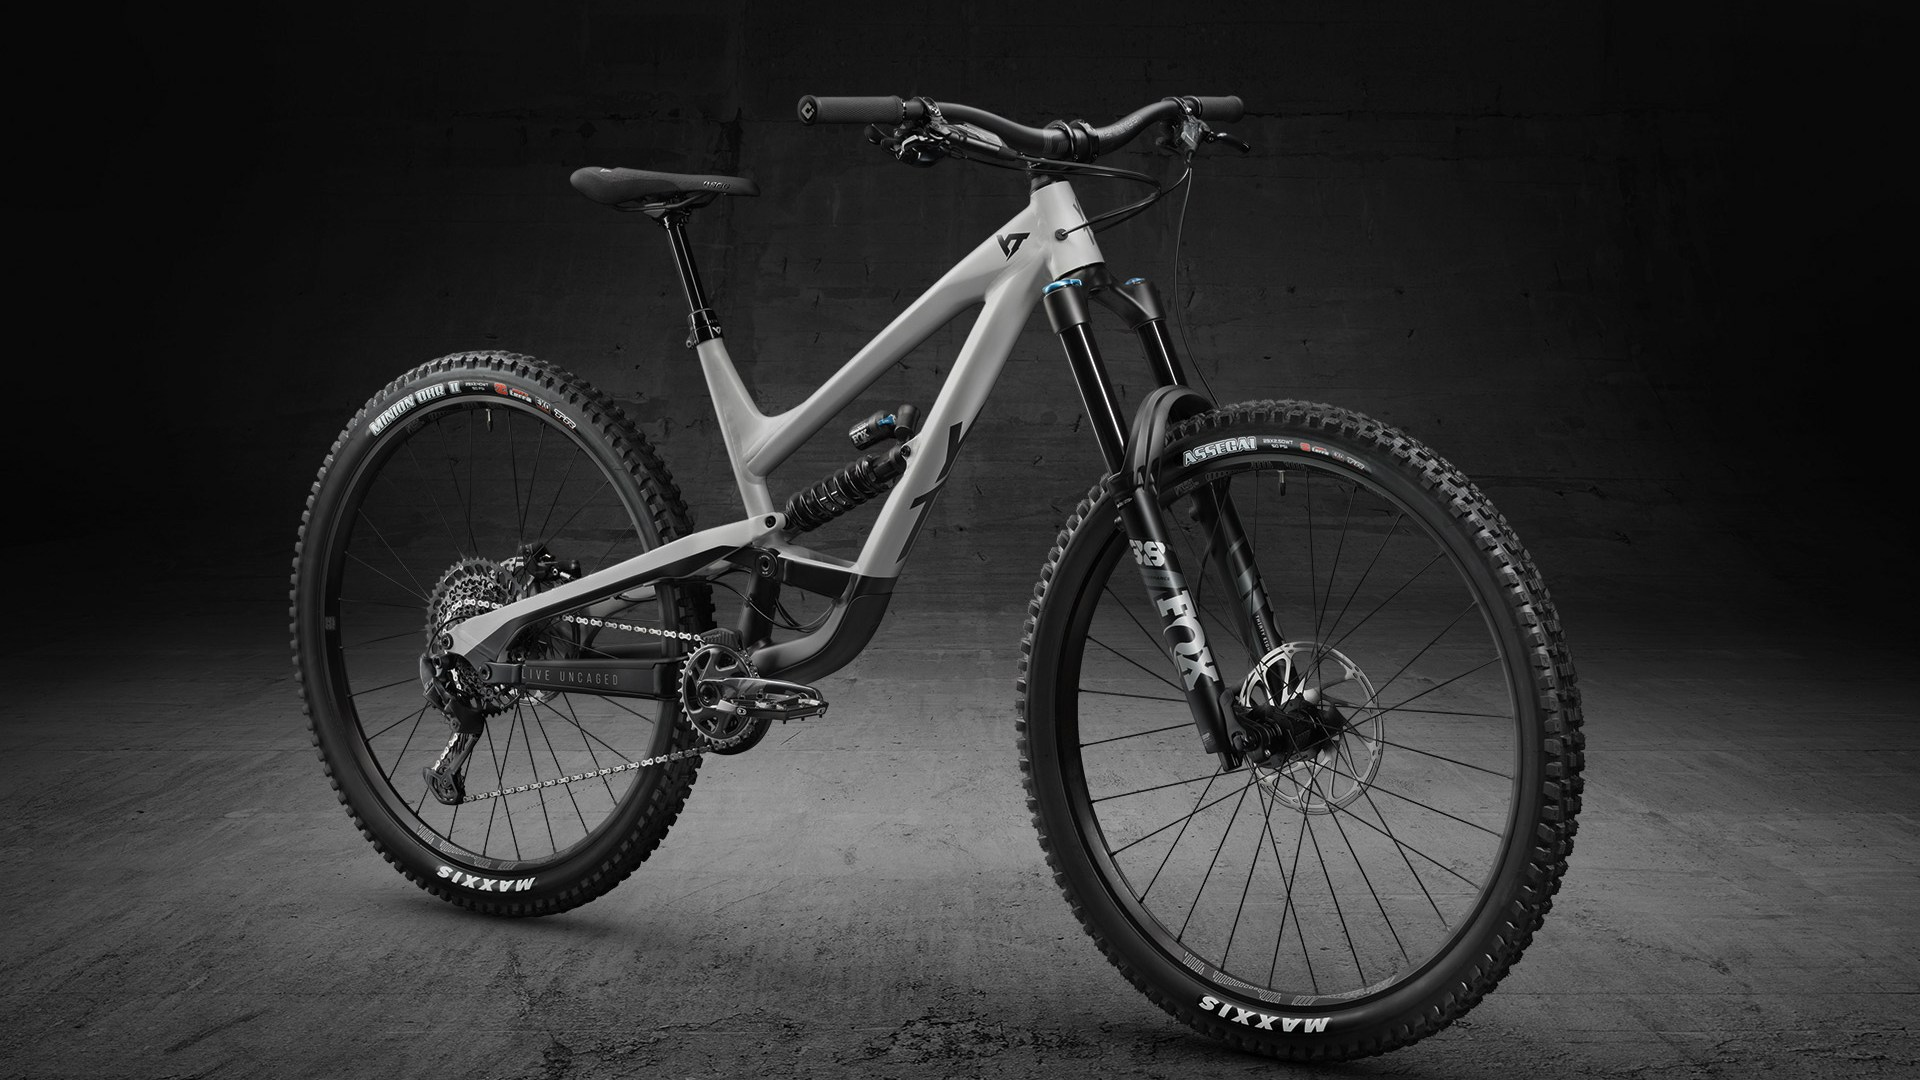 YT Capra Shred